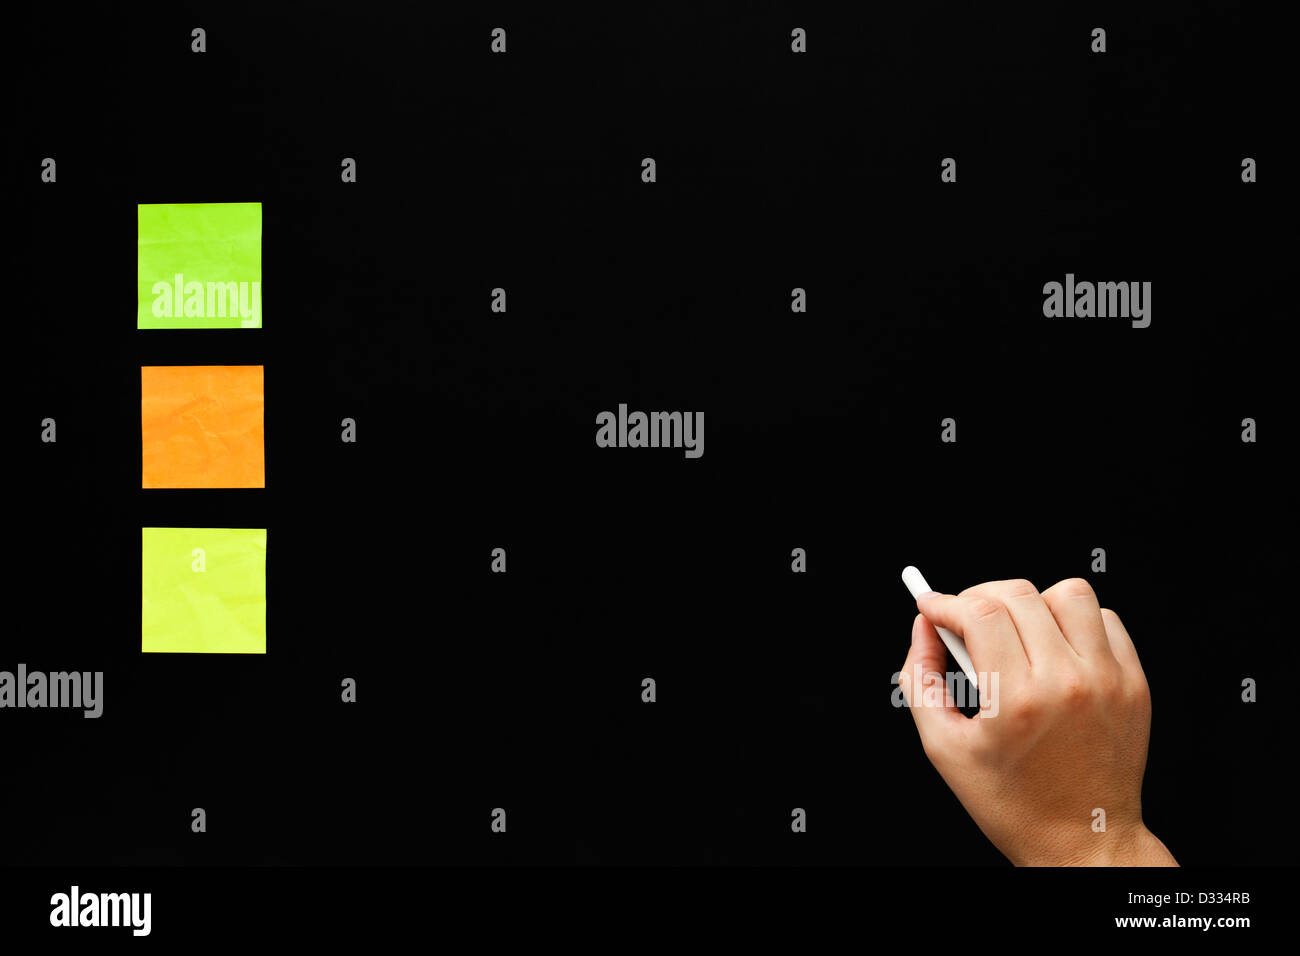 Hand writing something on blank blackboard with three different color sticky notes. - Stock Image